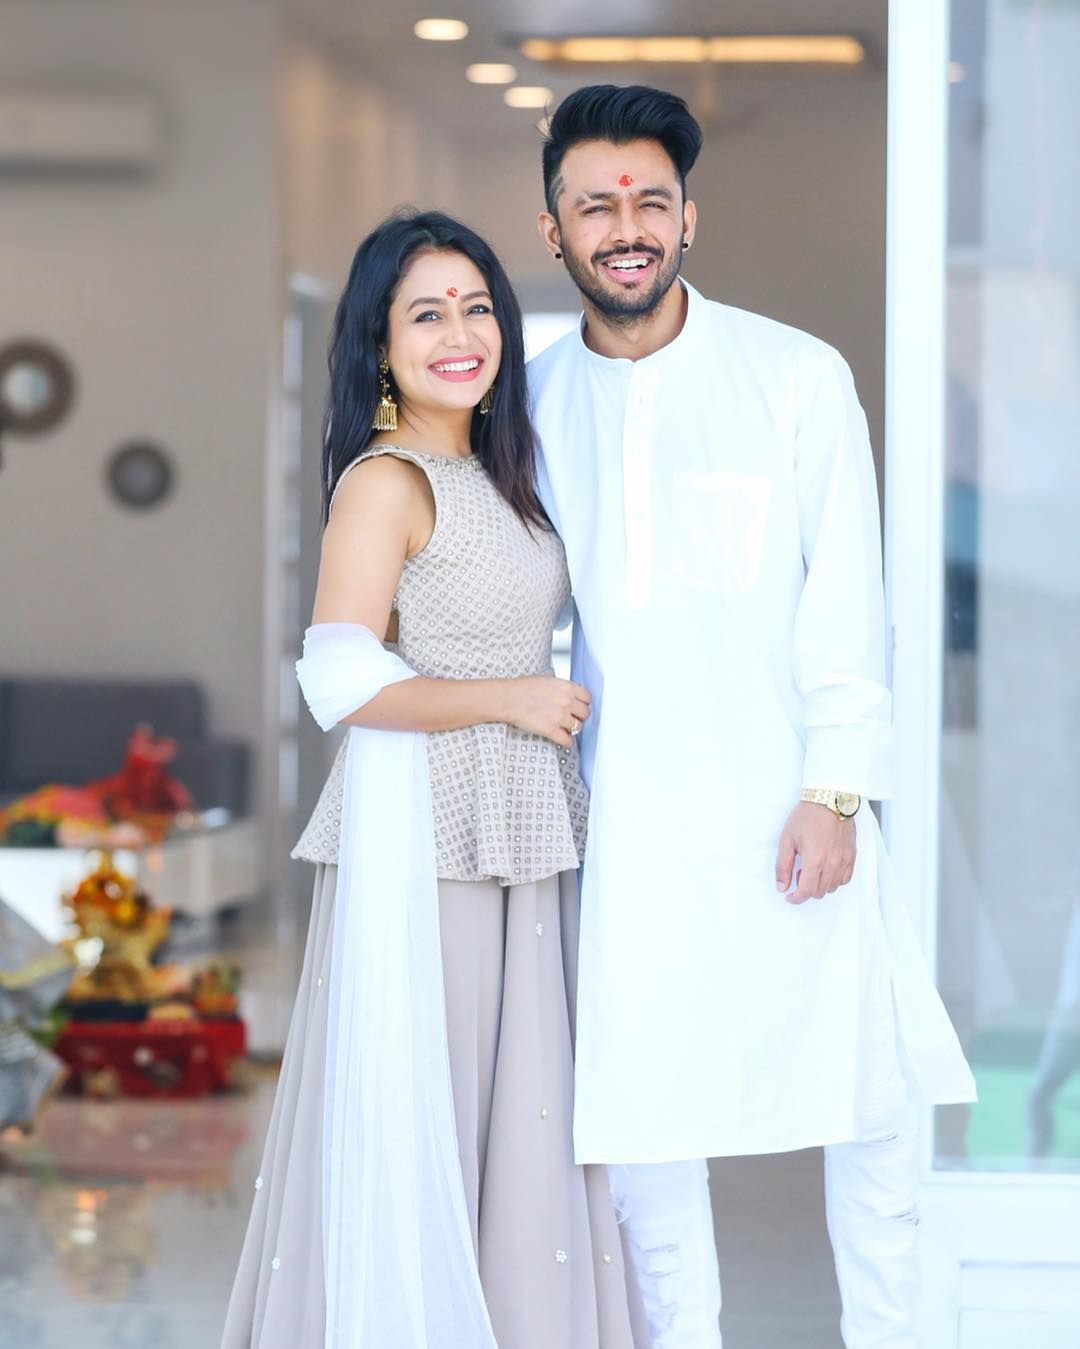 Singer Neha Kakkar With Her Brother Tony Kakkar Neha Kakkar Dresses Indian Wedding Outfits Neha Kakkar